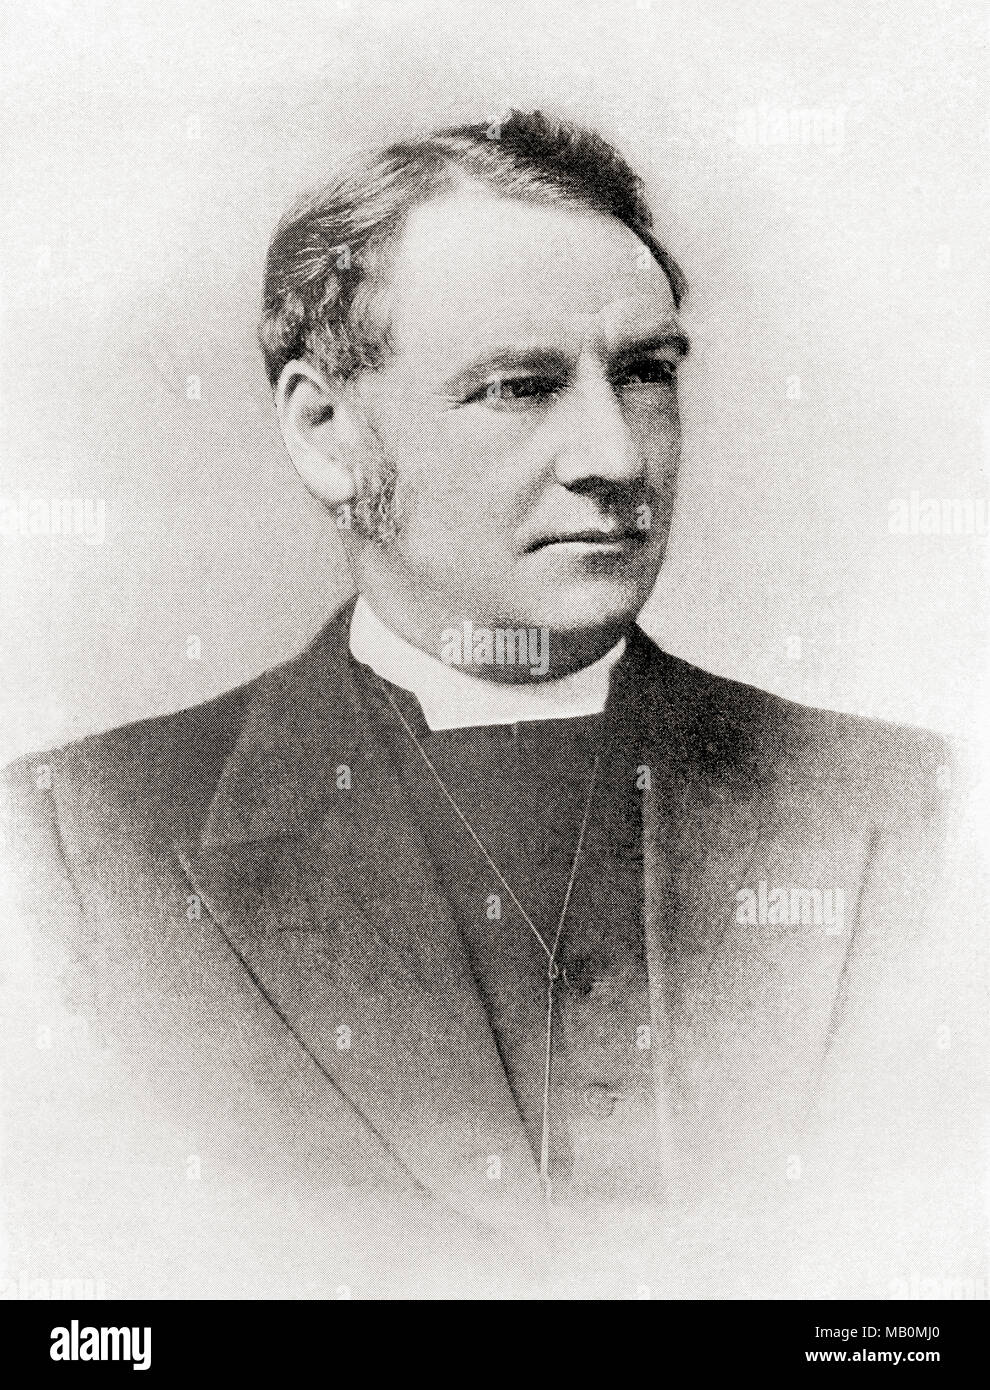 Rev. John Watson, 1850 – 1907, known by his pen name Ian Maclaren.  Scottish author and theologian.  From The International Library of Famous Literature, published c. 1900 - Stock Image